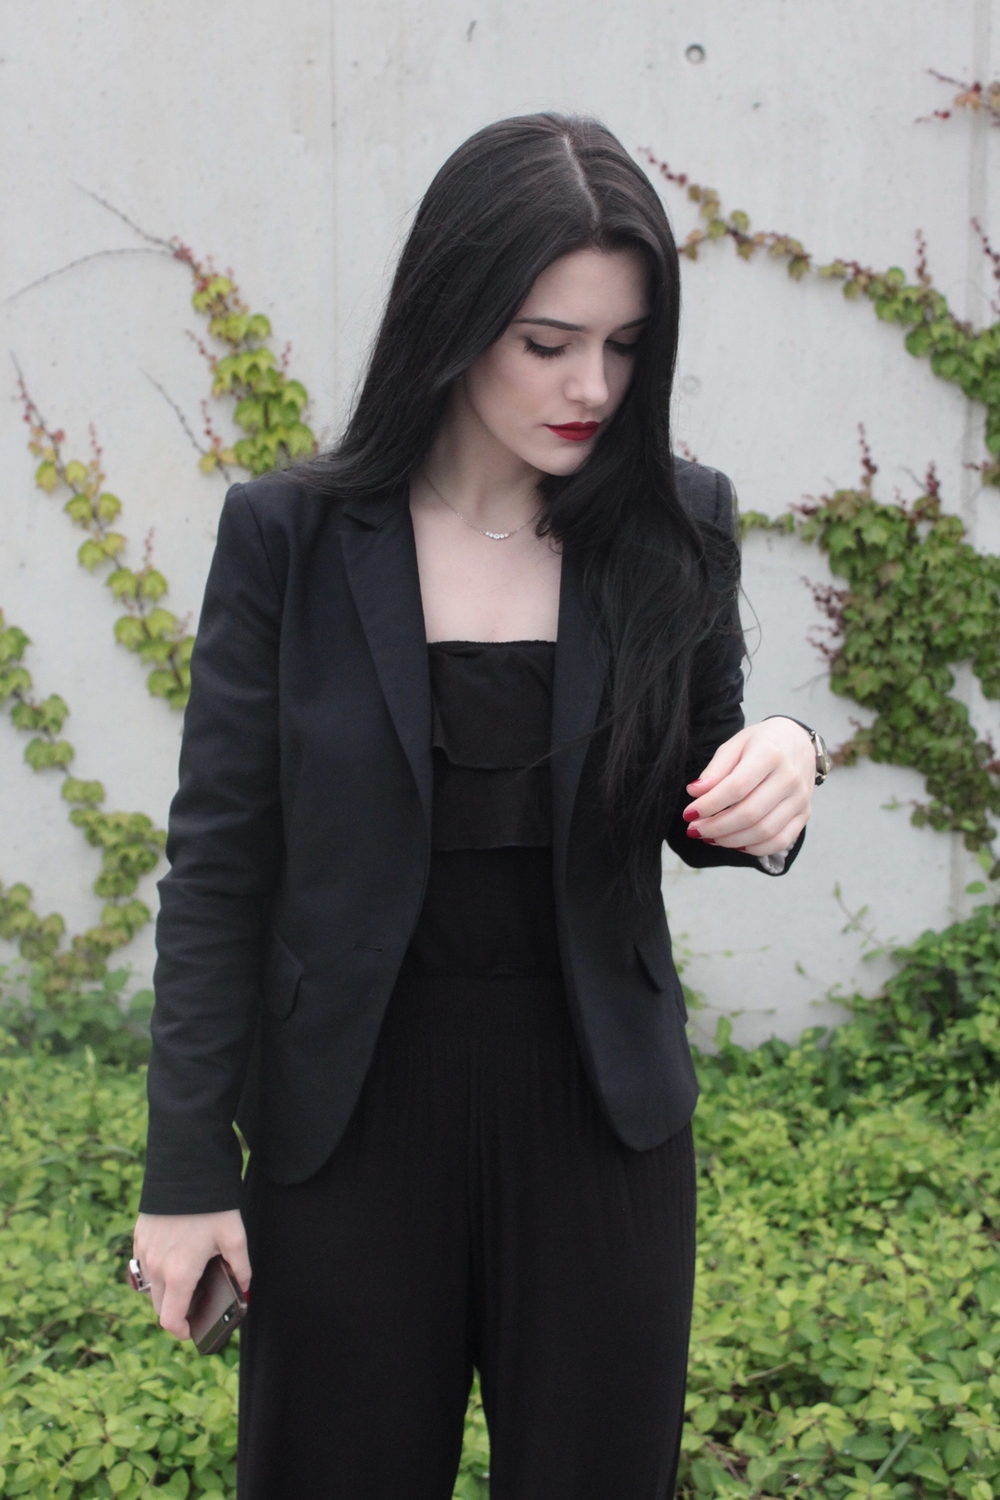 czarny kombinezon l na lato l total black l simple look